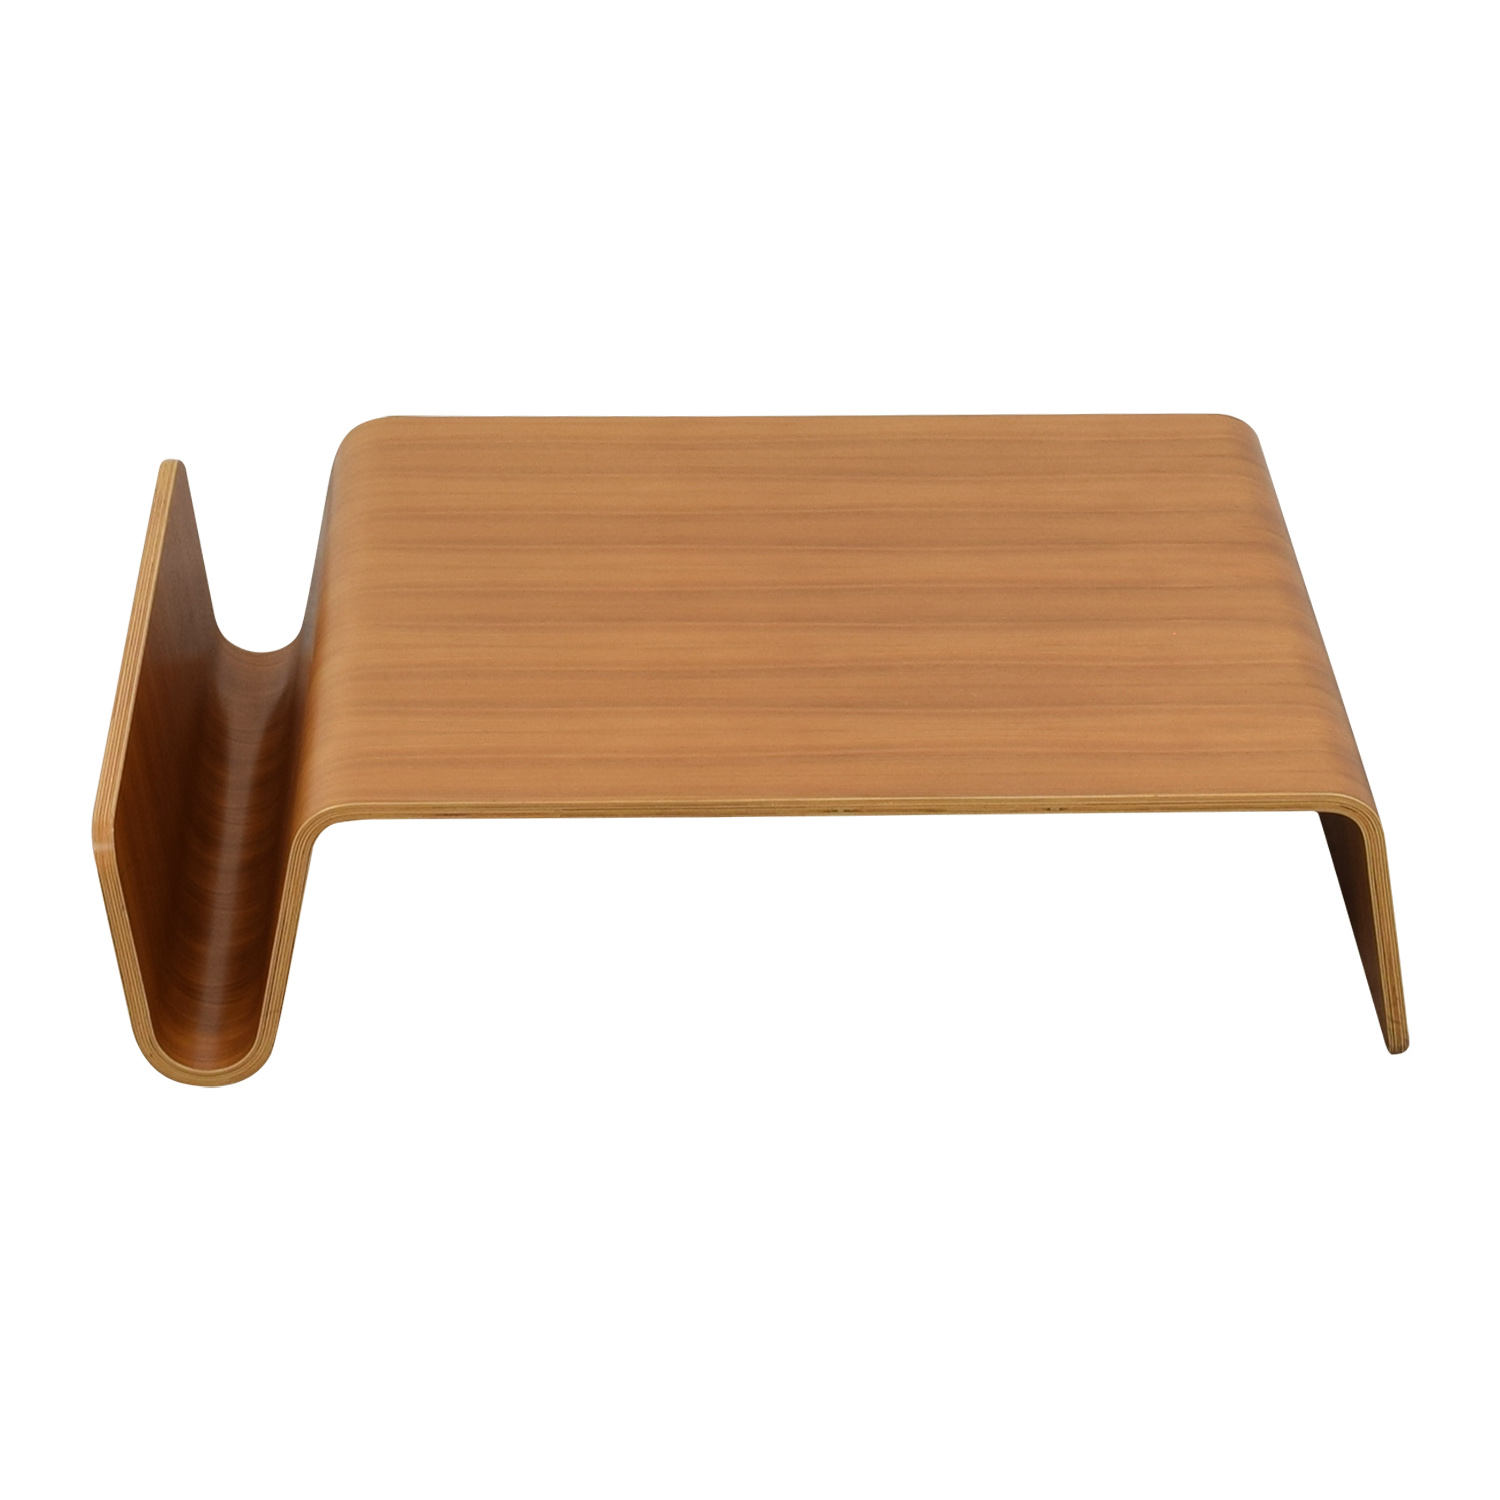 Offi & Company Offi & Company Scando Table for sale